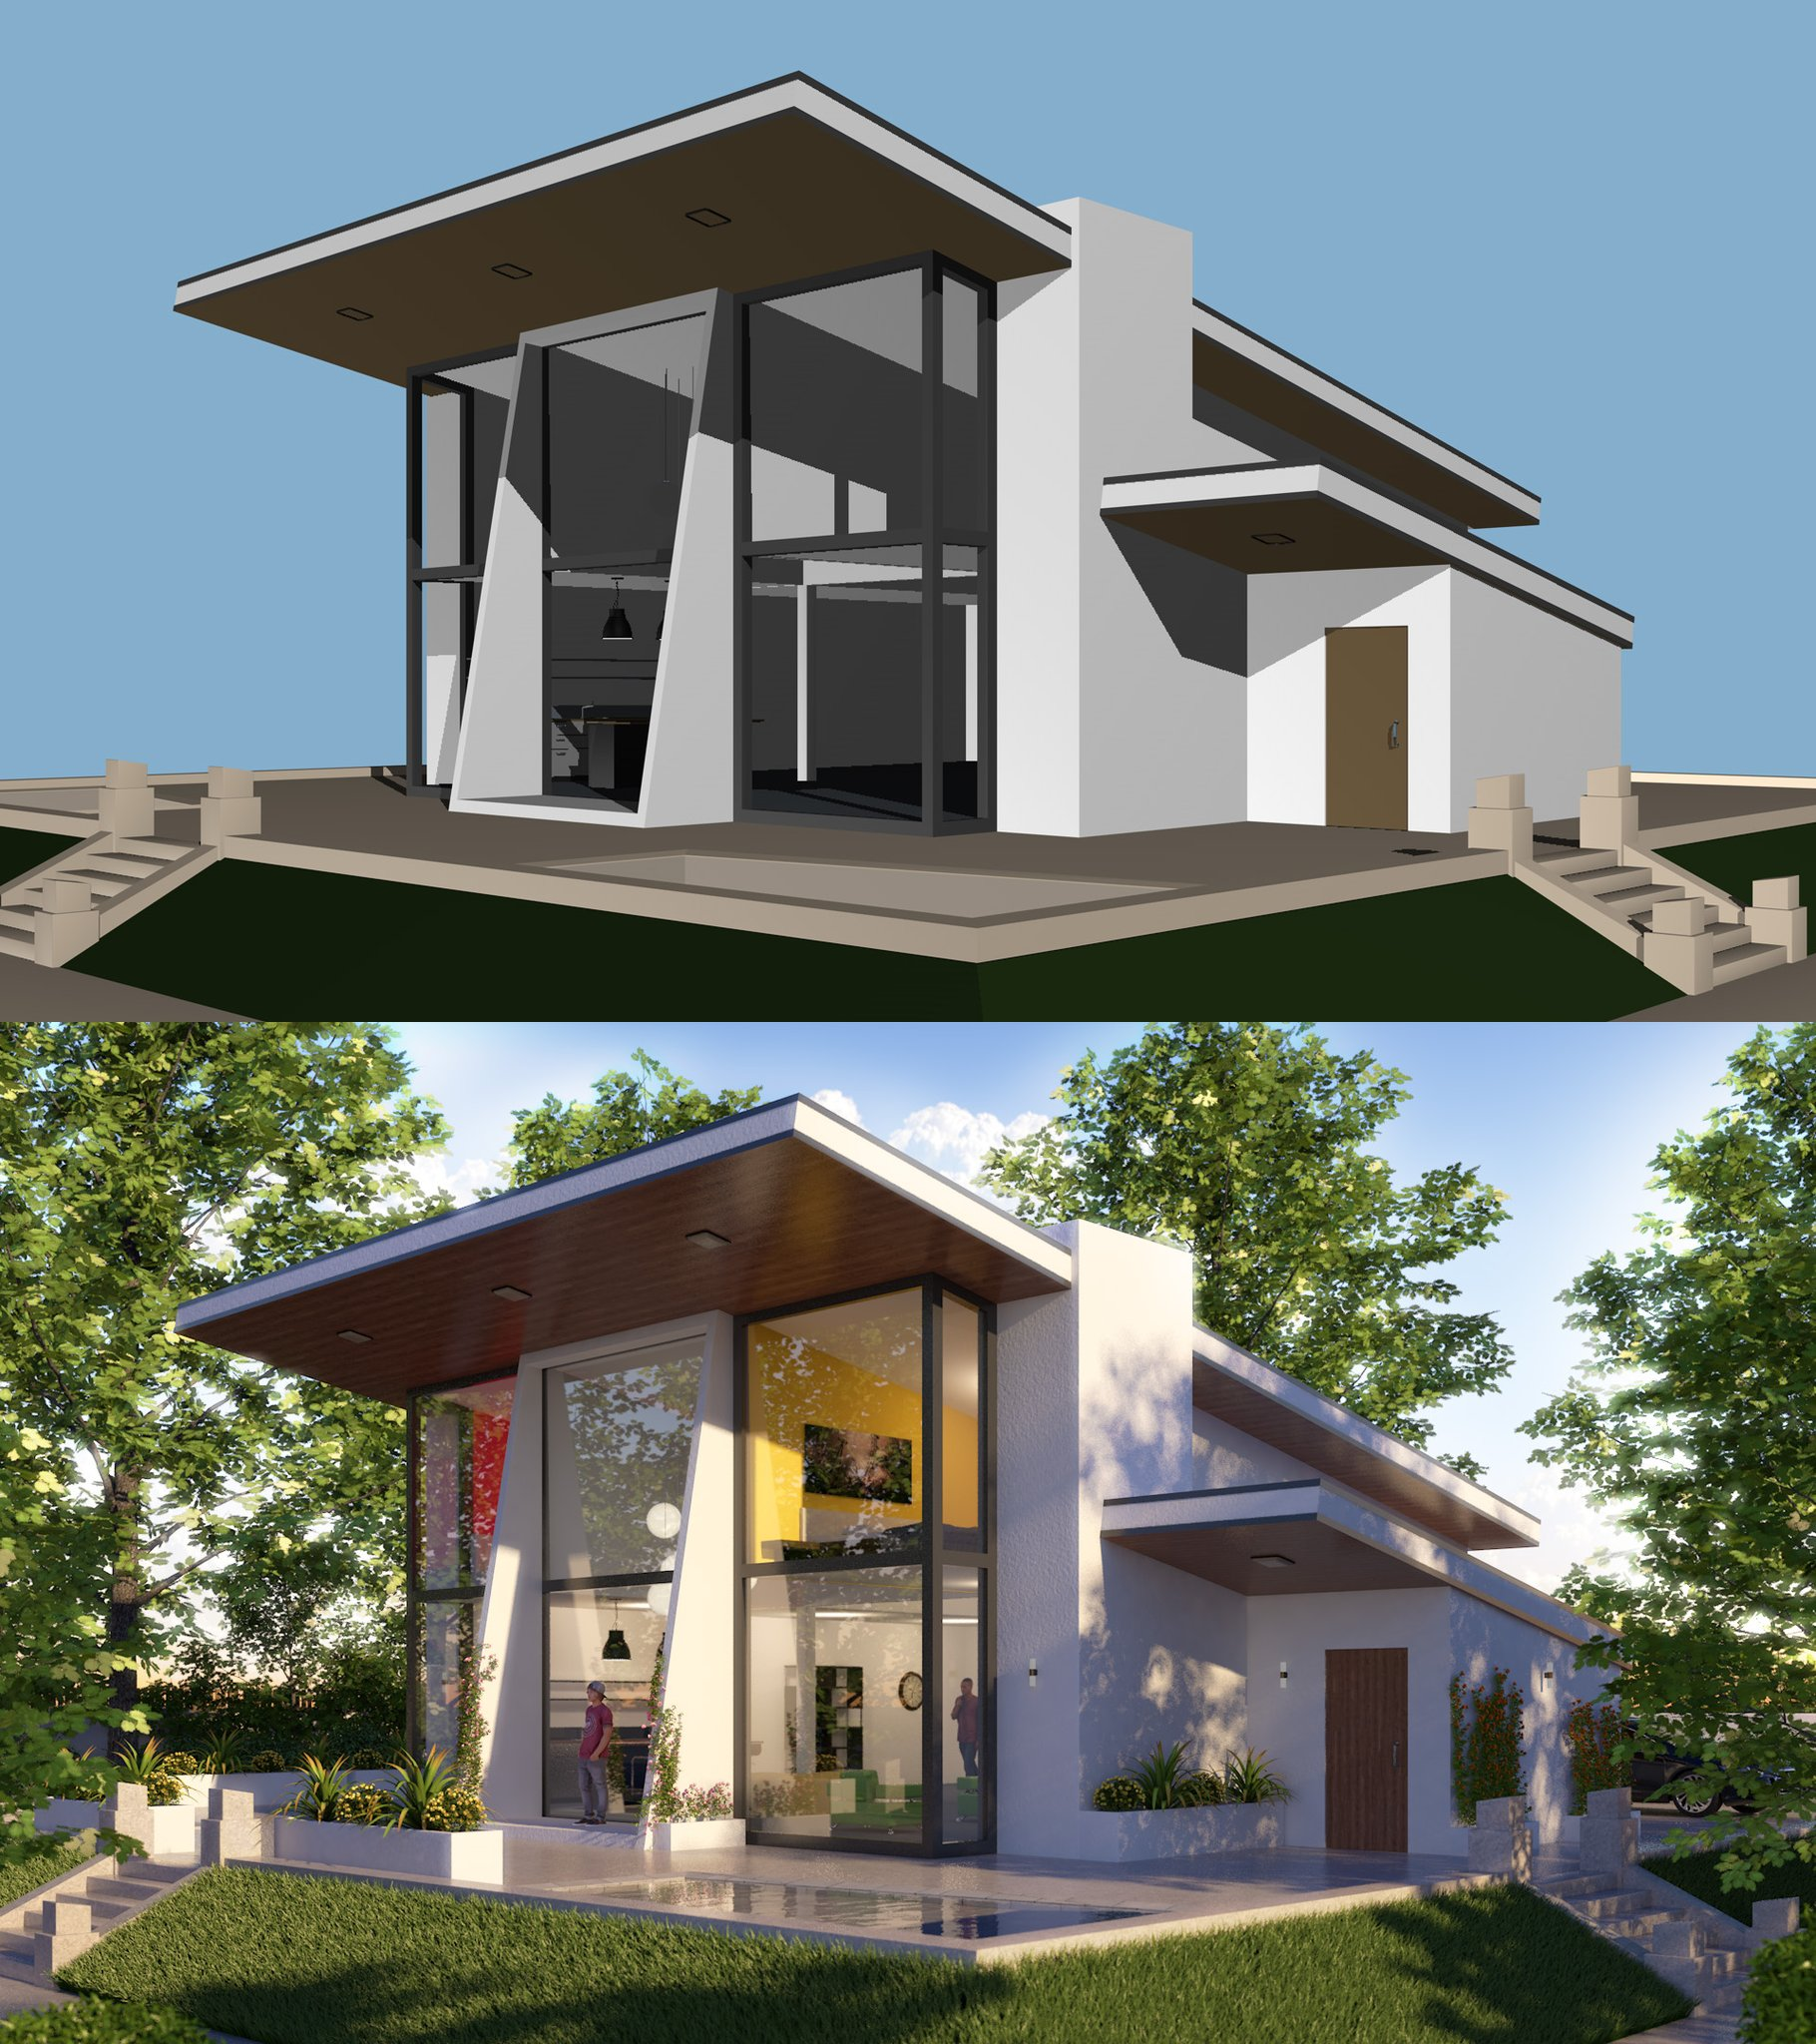 Architektur Rendering Photoshop Cinema 4d R19 Modern Exterior Architecture Video Tutorial